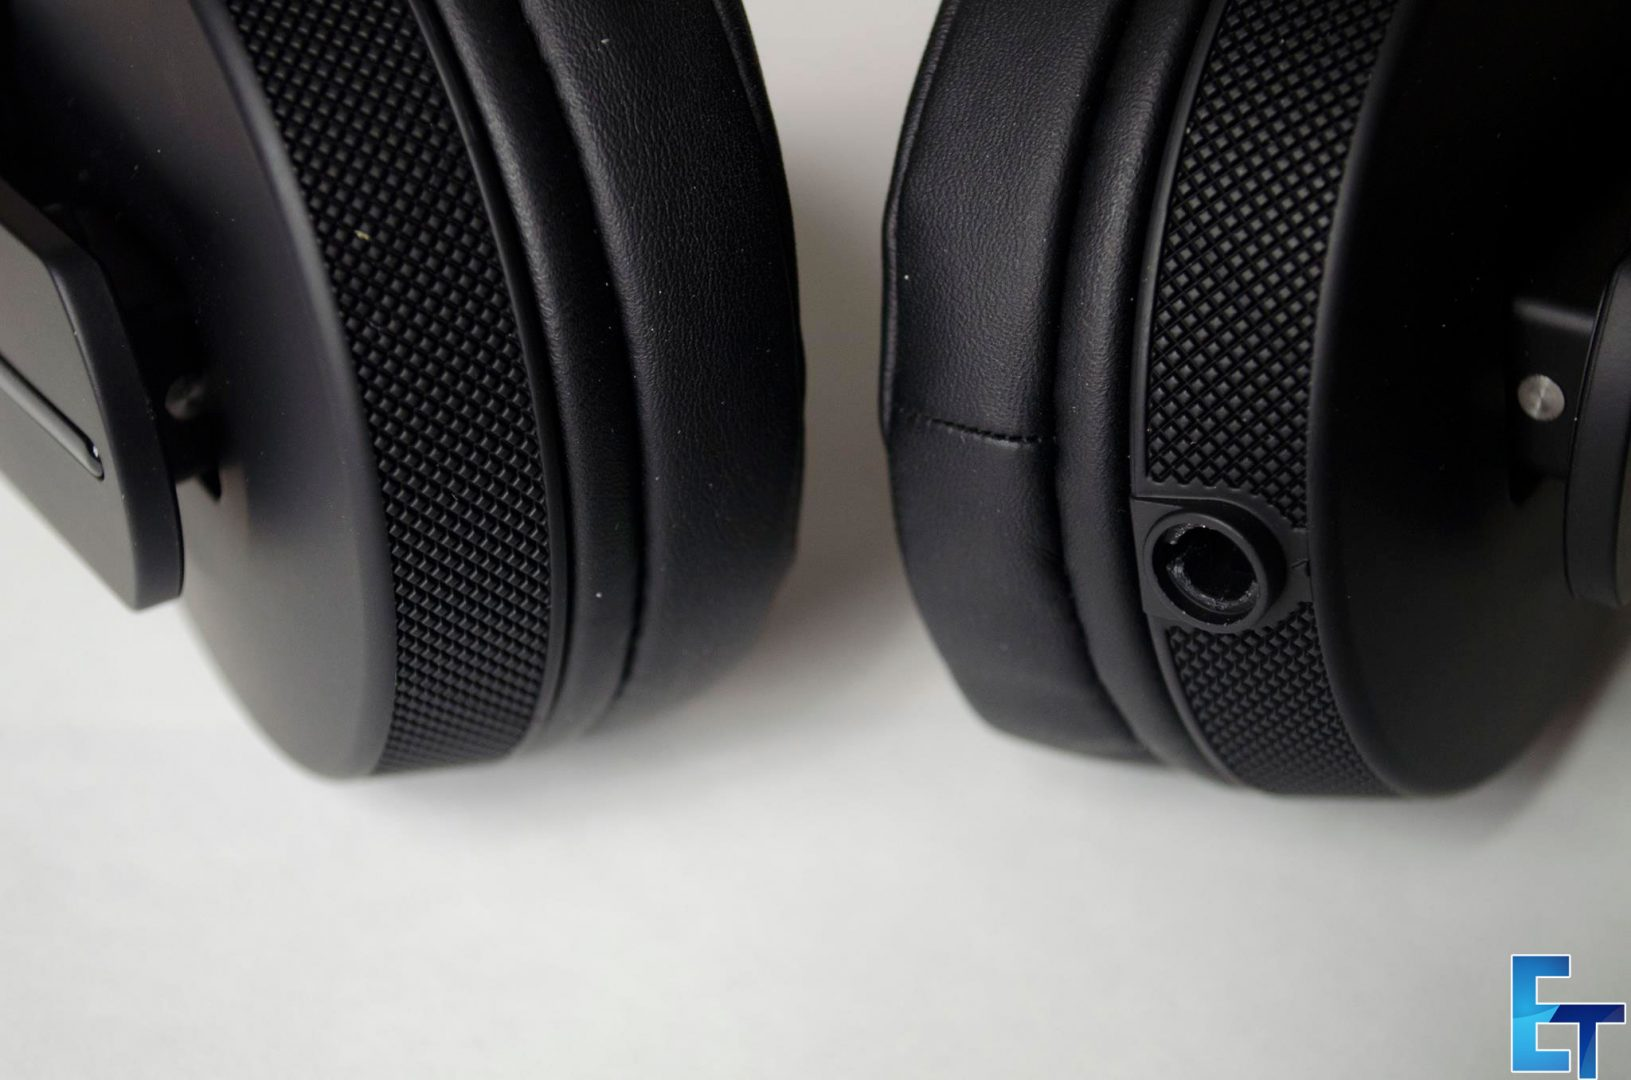 Pioneer-HDJ-700-Headphones-Review_6